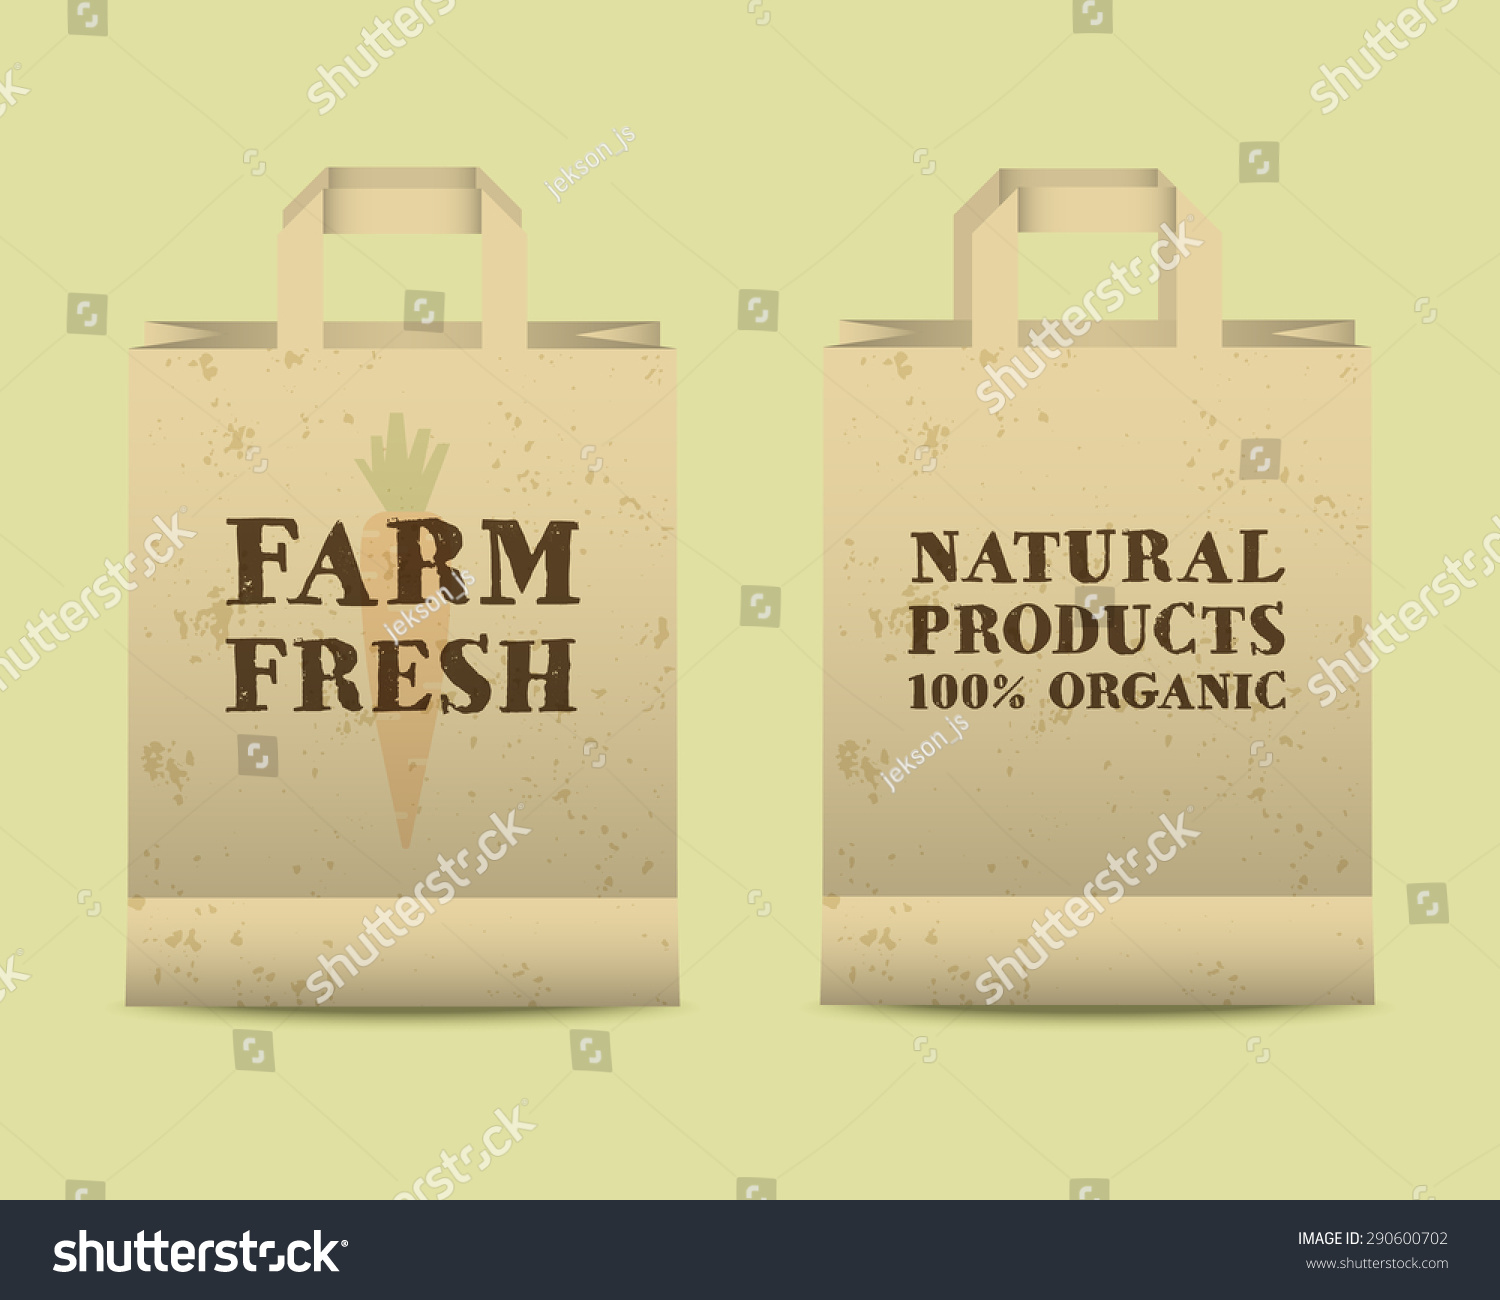 hight resolution of stylish farm fresh paper bags template mock up design with shadow vintage colors best for natural shop organic fairs eco markets and local companies